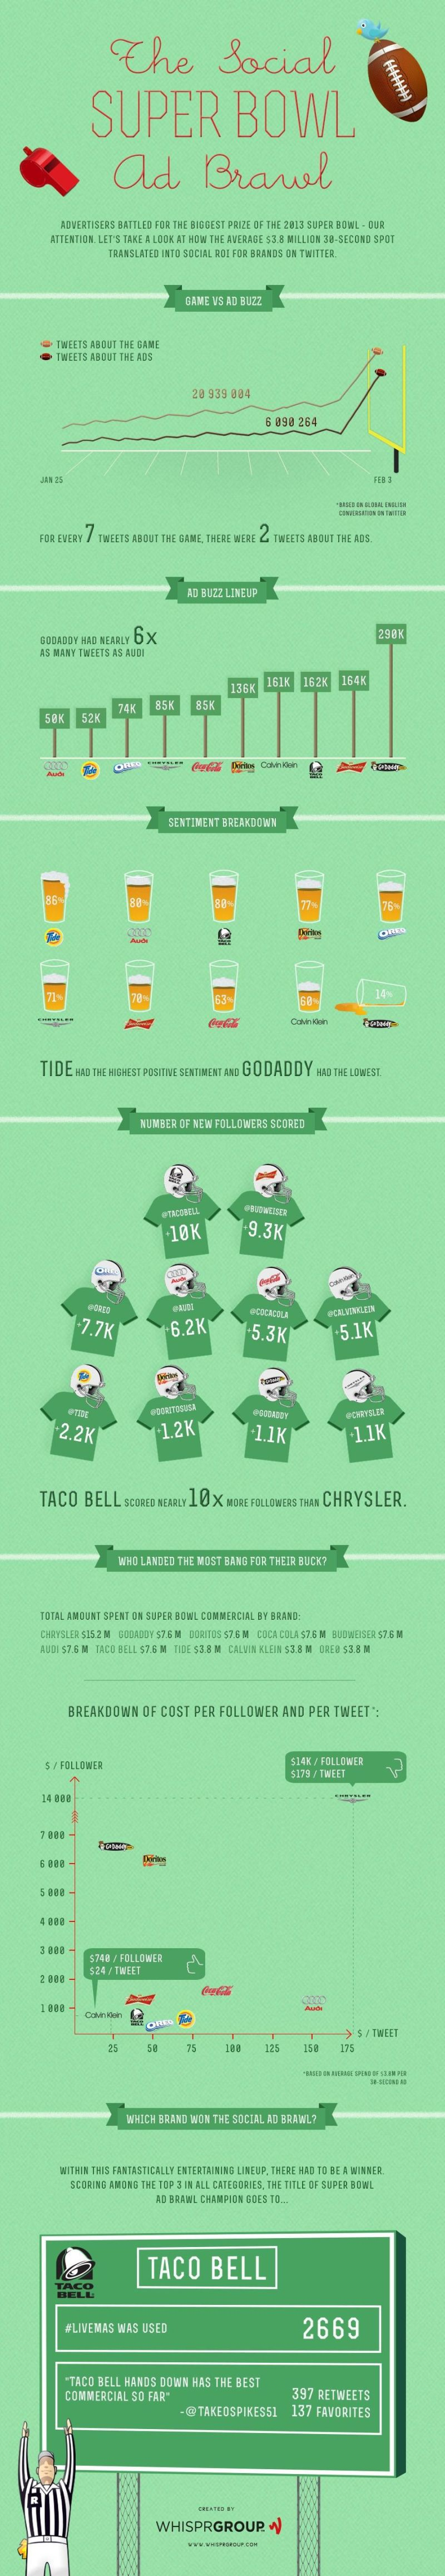 Infographic - The Super Bowl & Social Ads